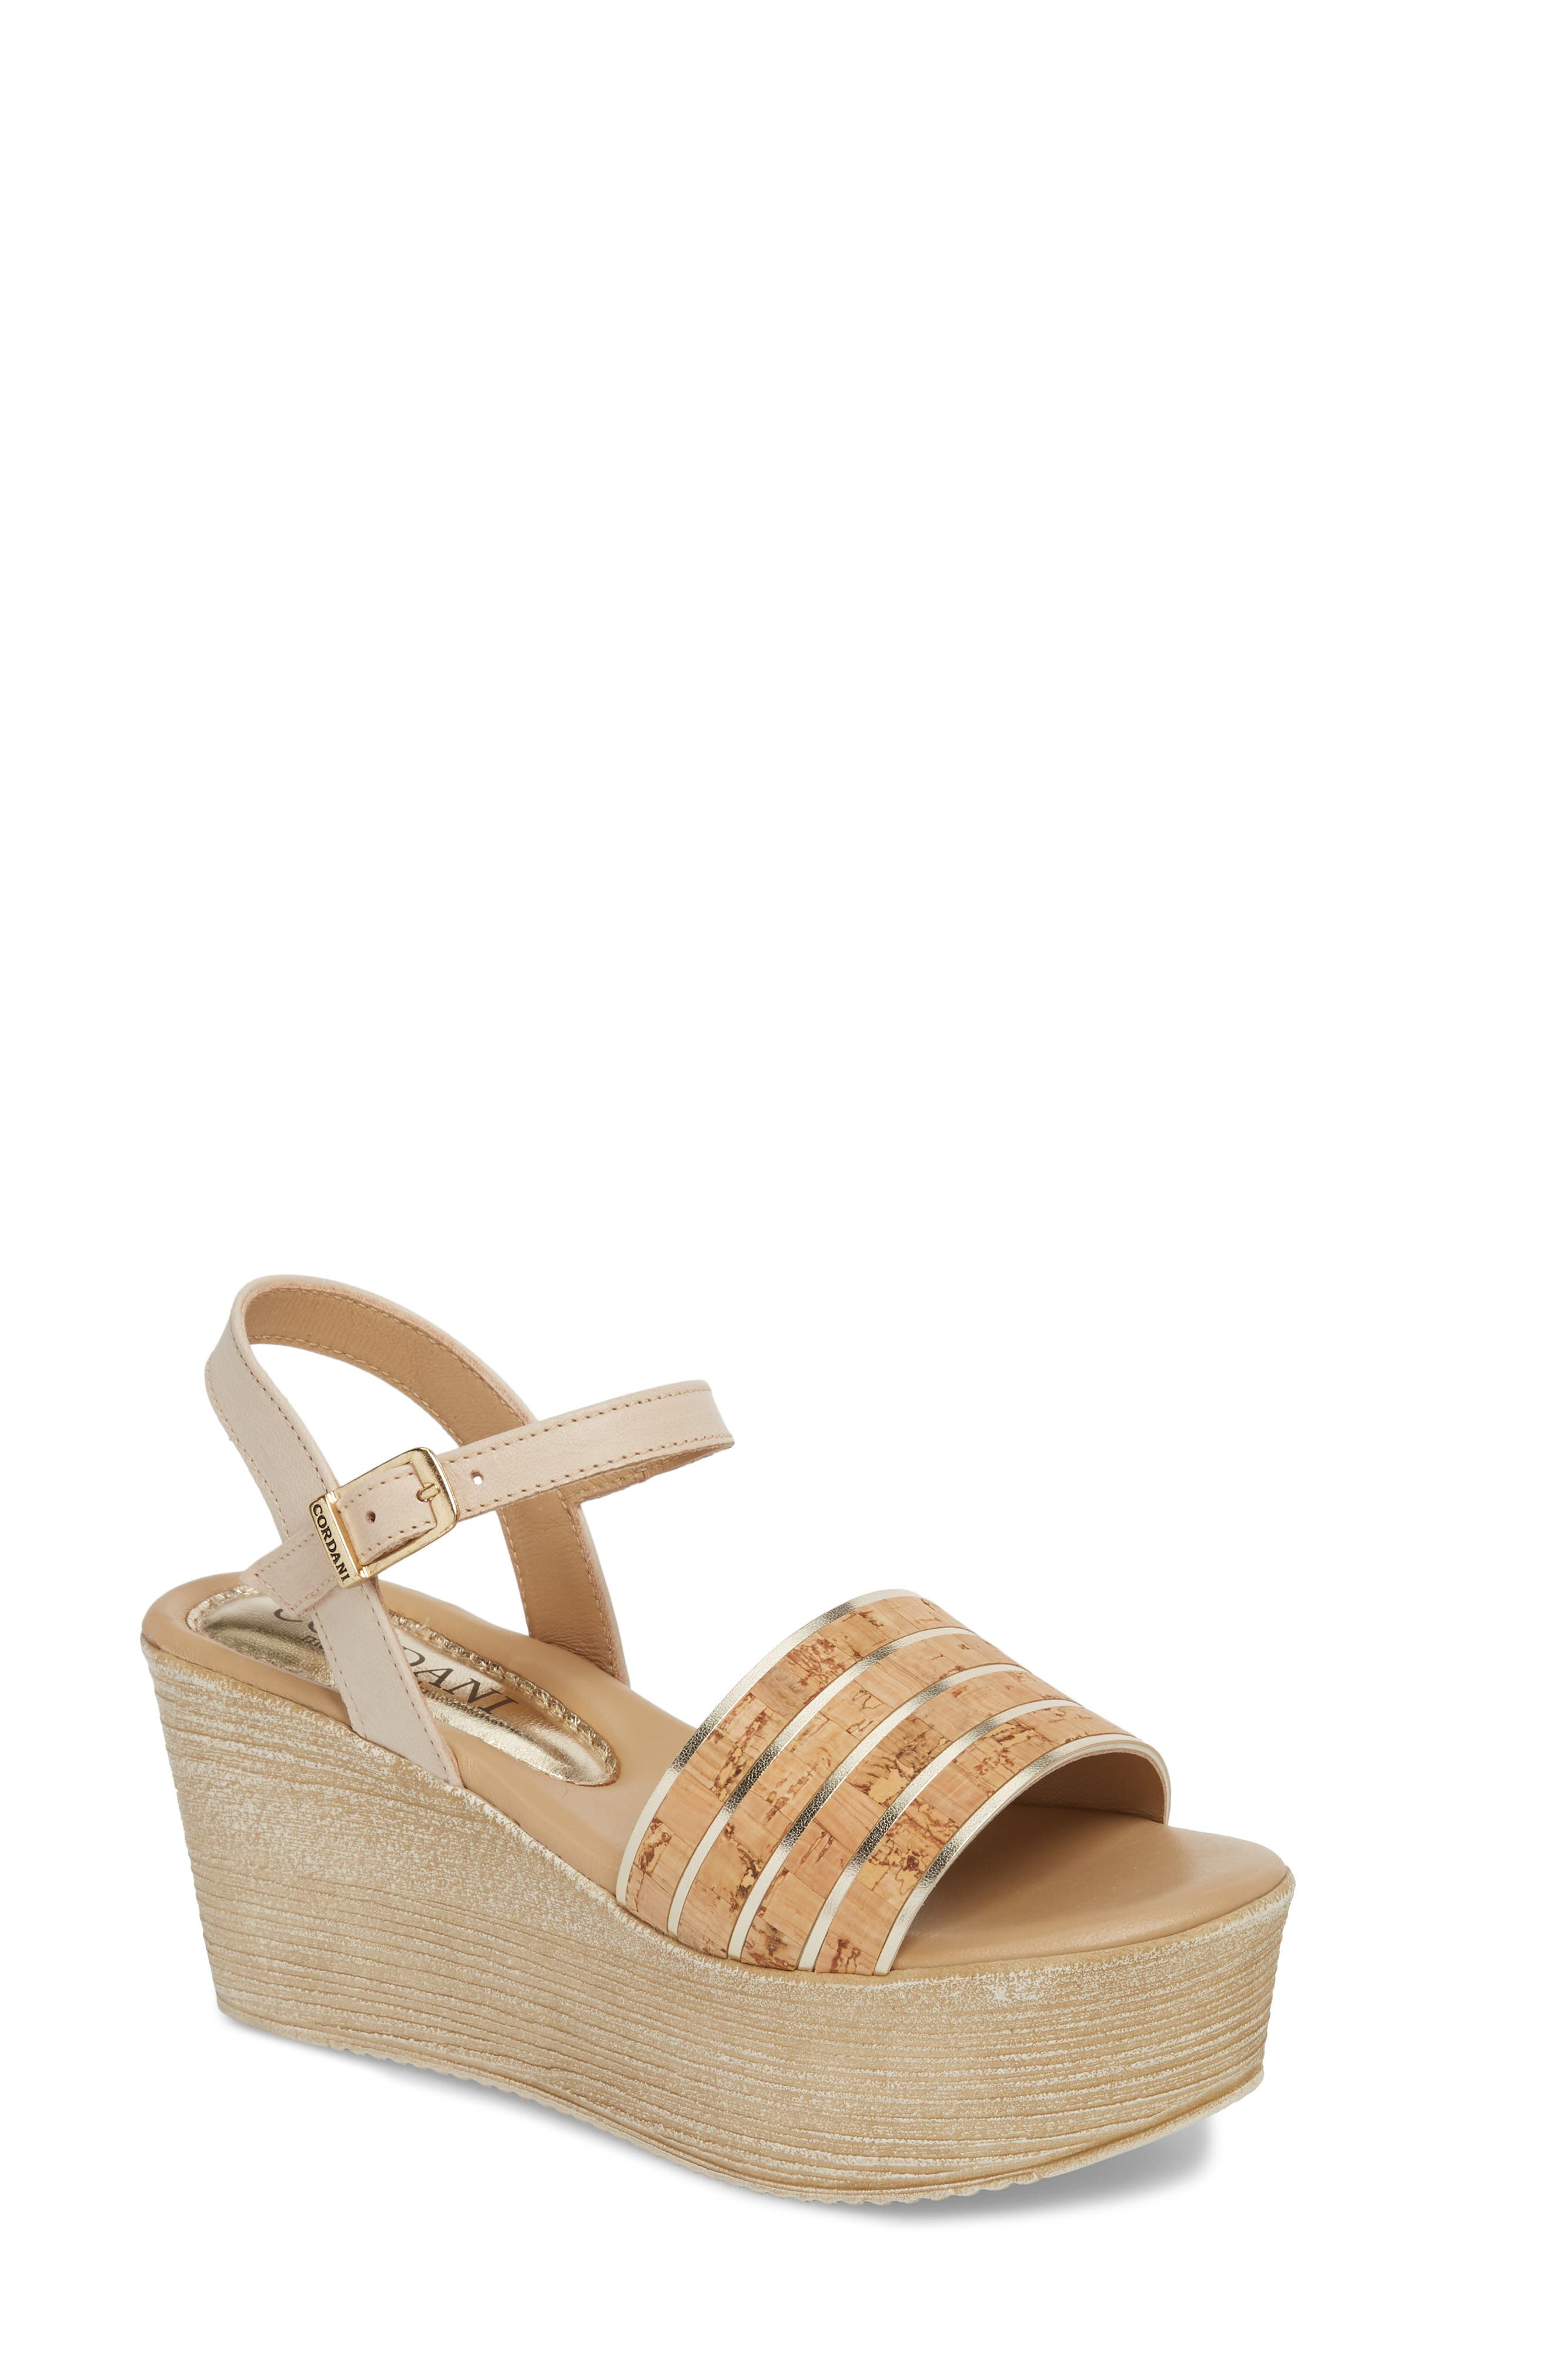 Jaida Platform Wedge Sandal,                         Main,                         color, Cork/ Gold